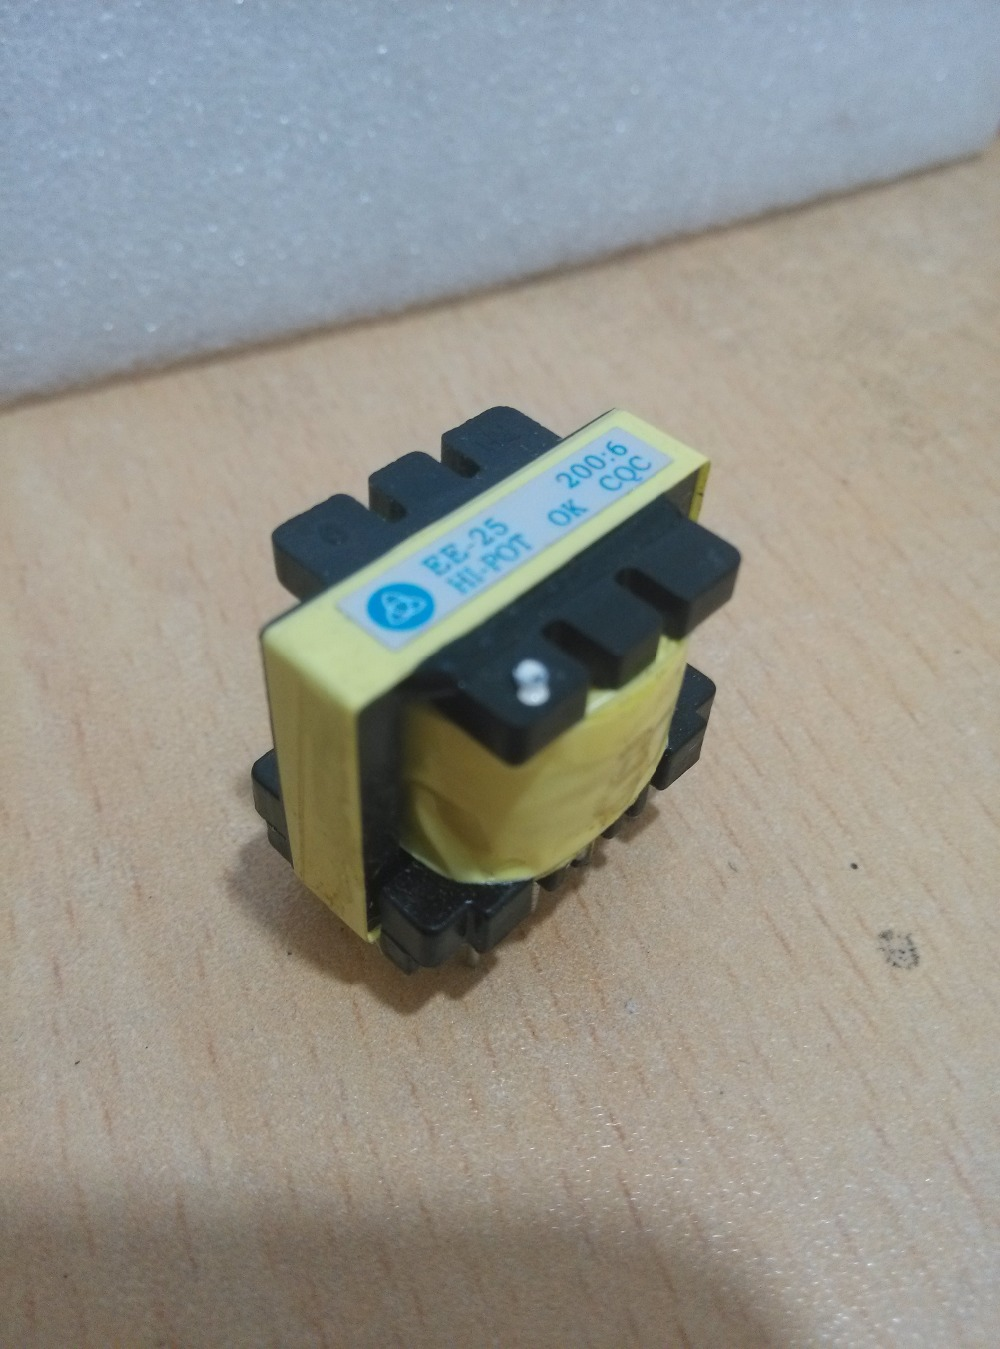 hight resolution of 1pcs ee25 200 6 welding transformer high frequency switch power supply transformer x0098